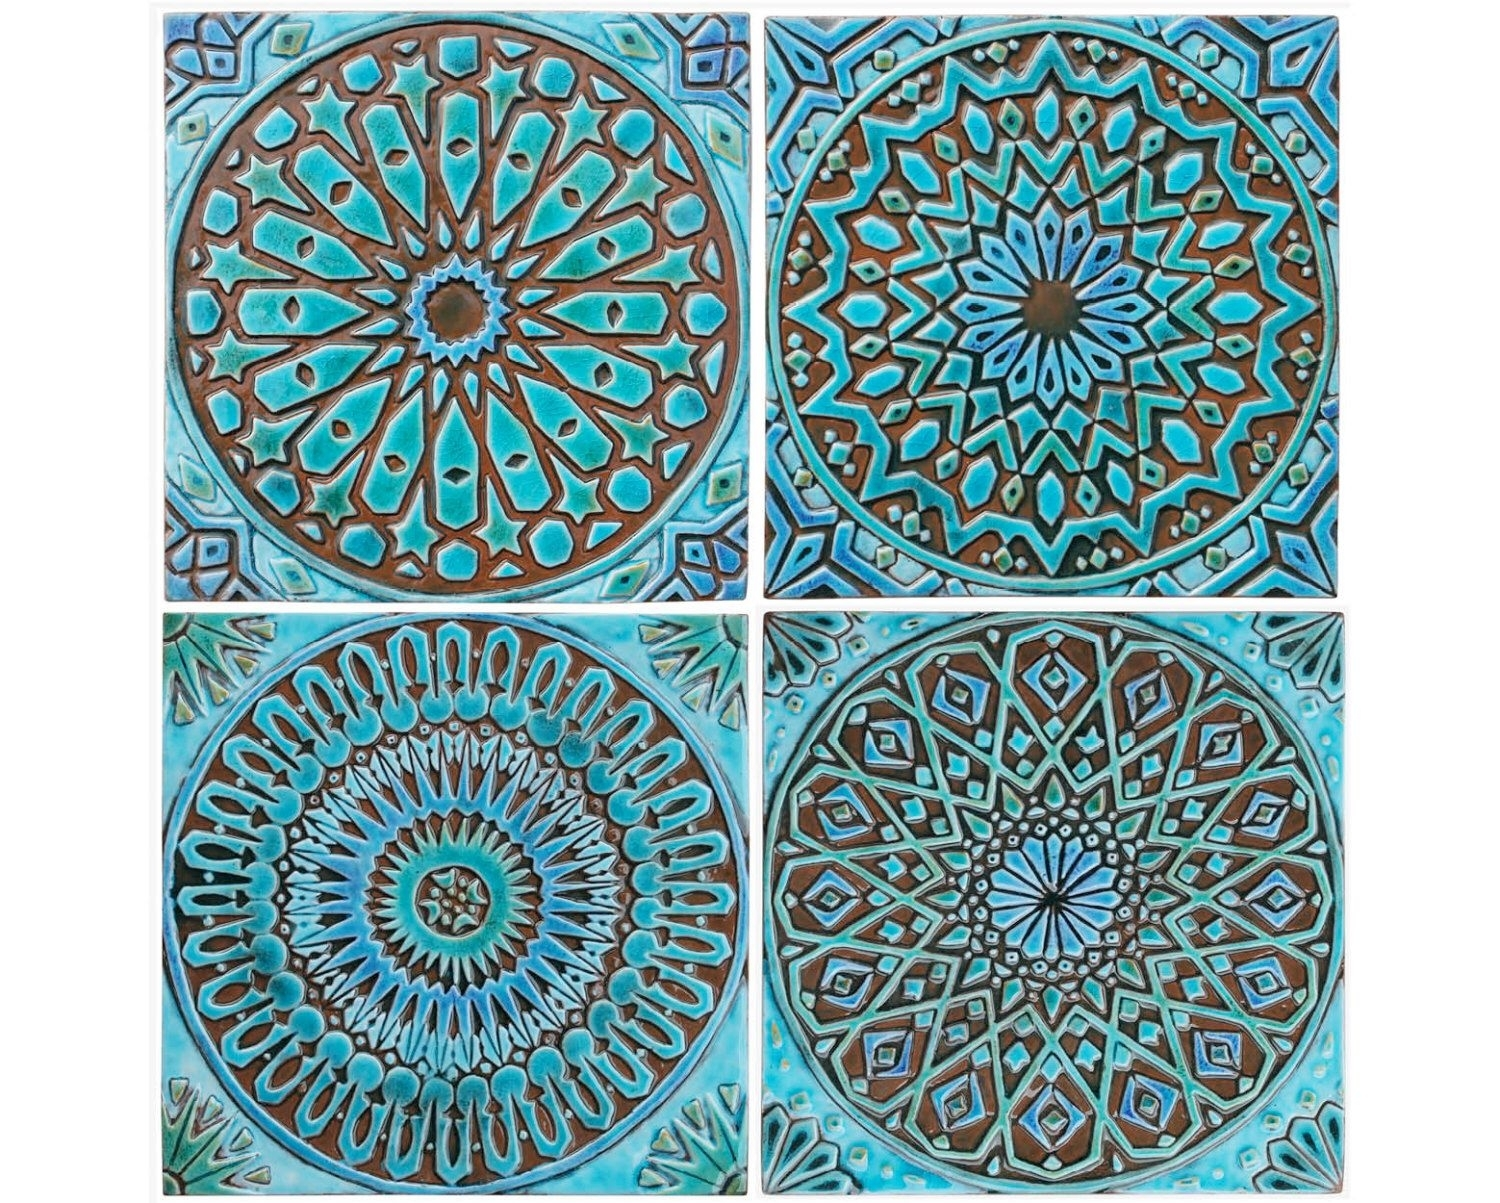 Moroccan Decor, Set Of 4 Moroccan Tiles, Moroccan Wall Art, Outdoor Intended For Most Recent Moroccan Wall Art (Gallery 9 of 20)